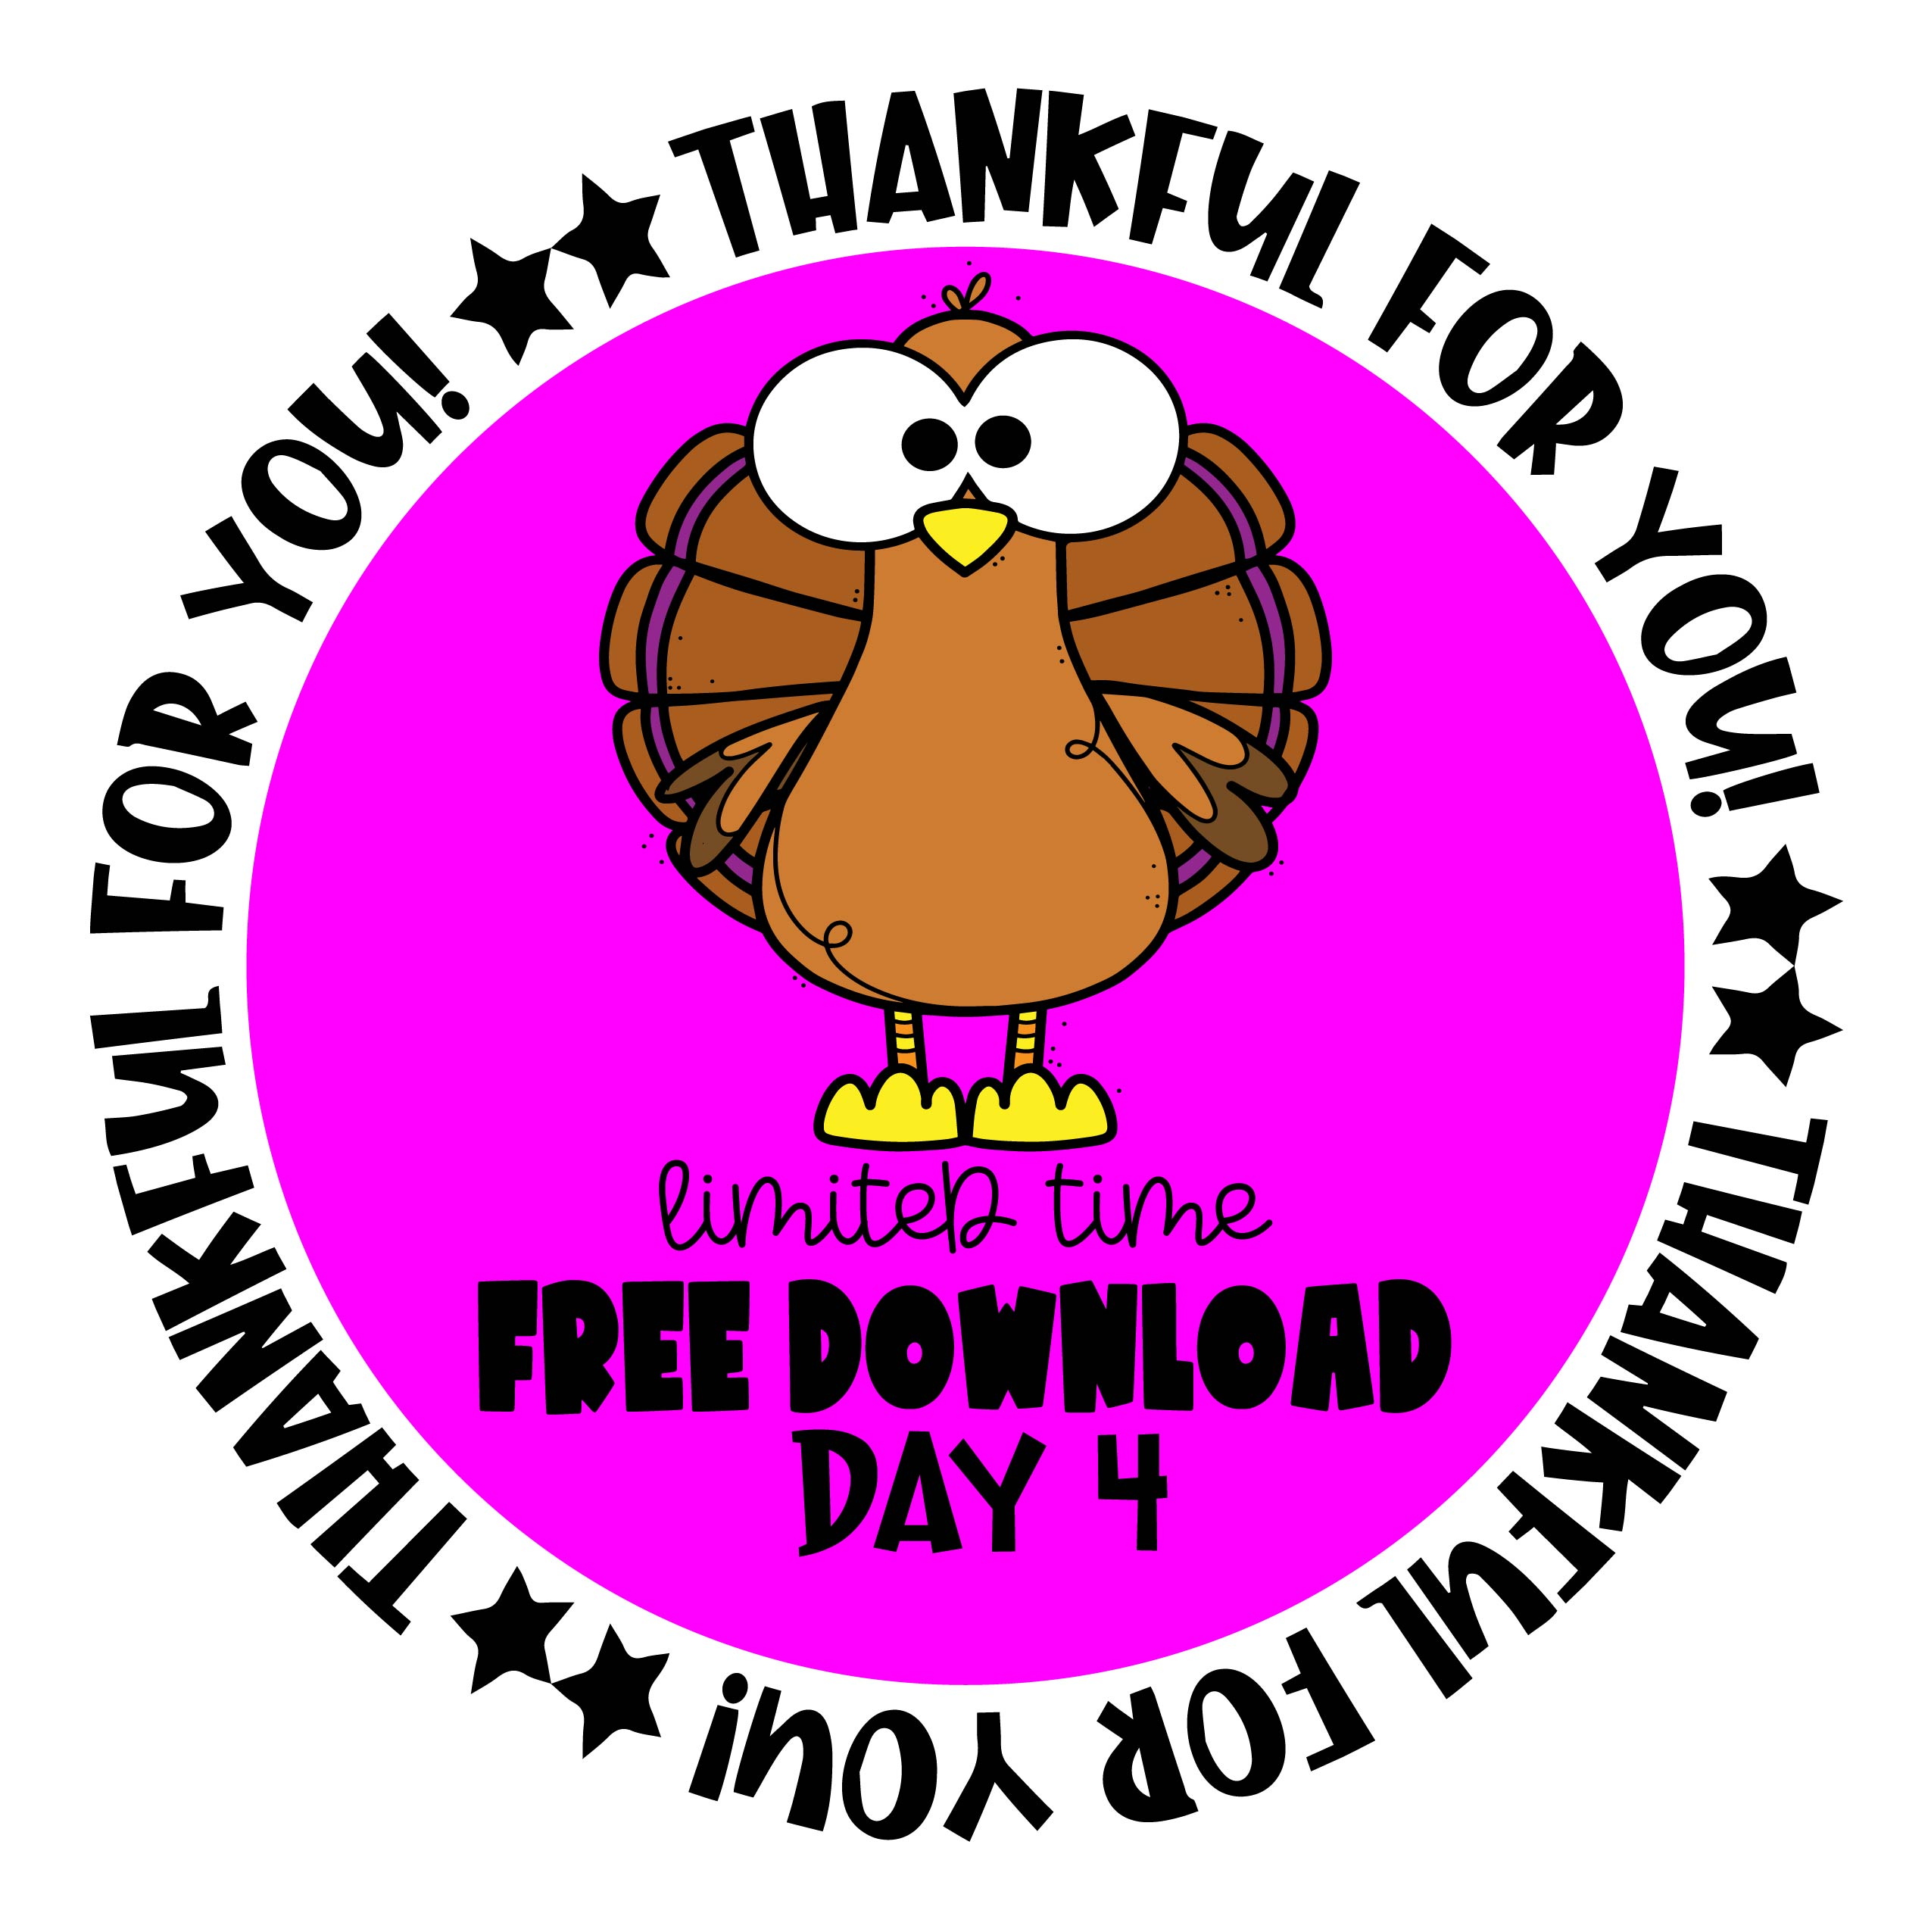 Thankful For You Free Download Day 4 Edu Clips